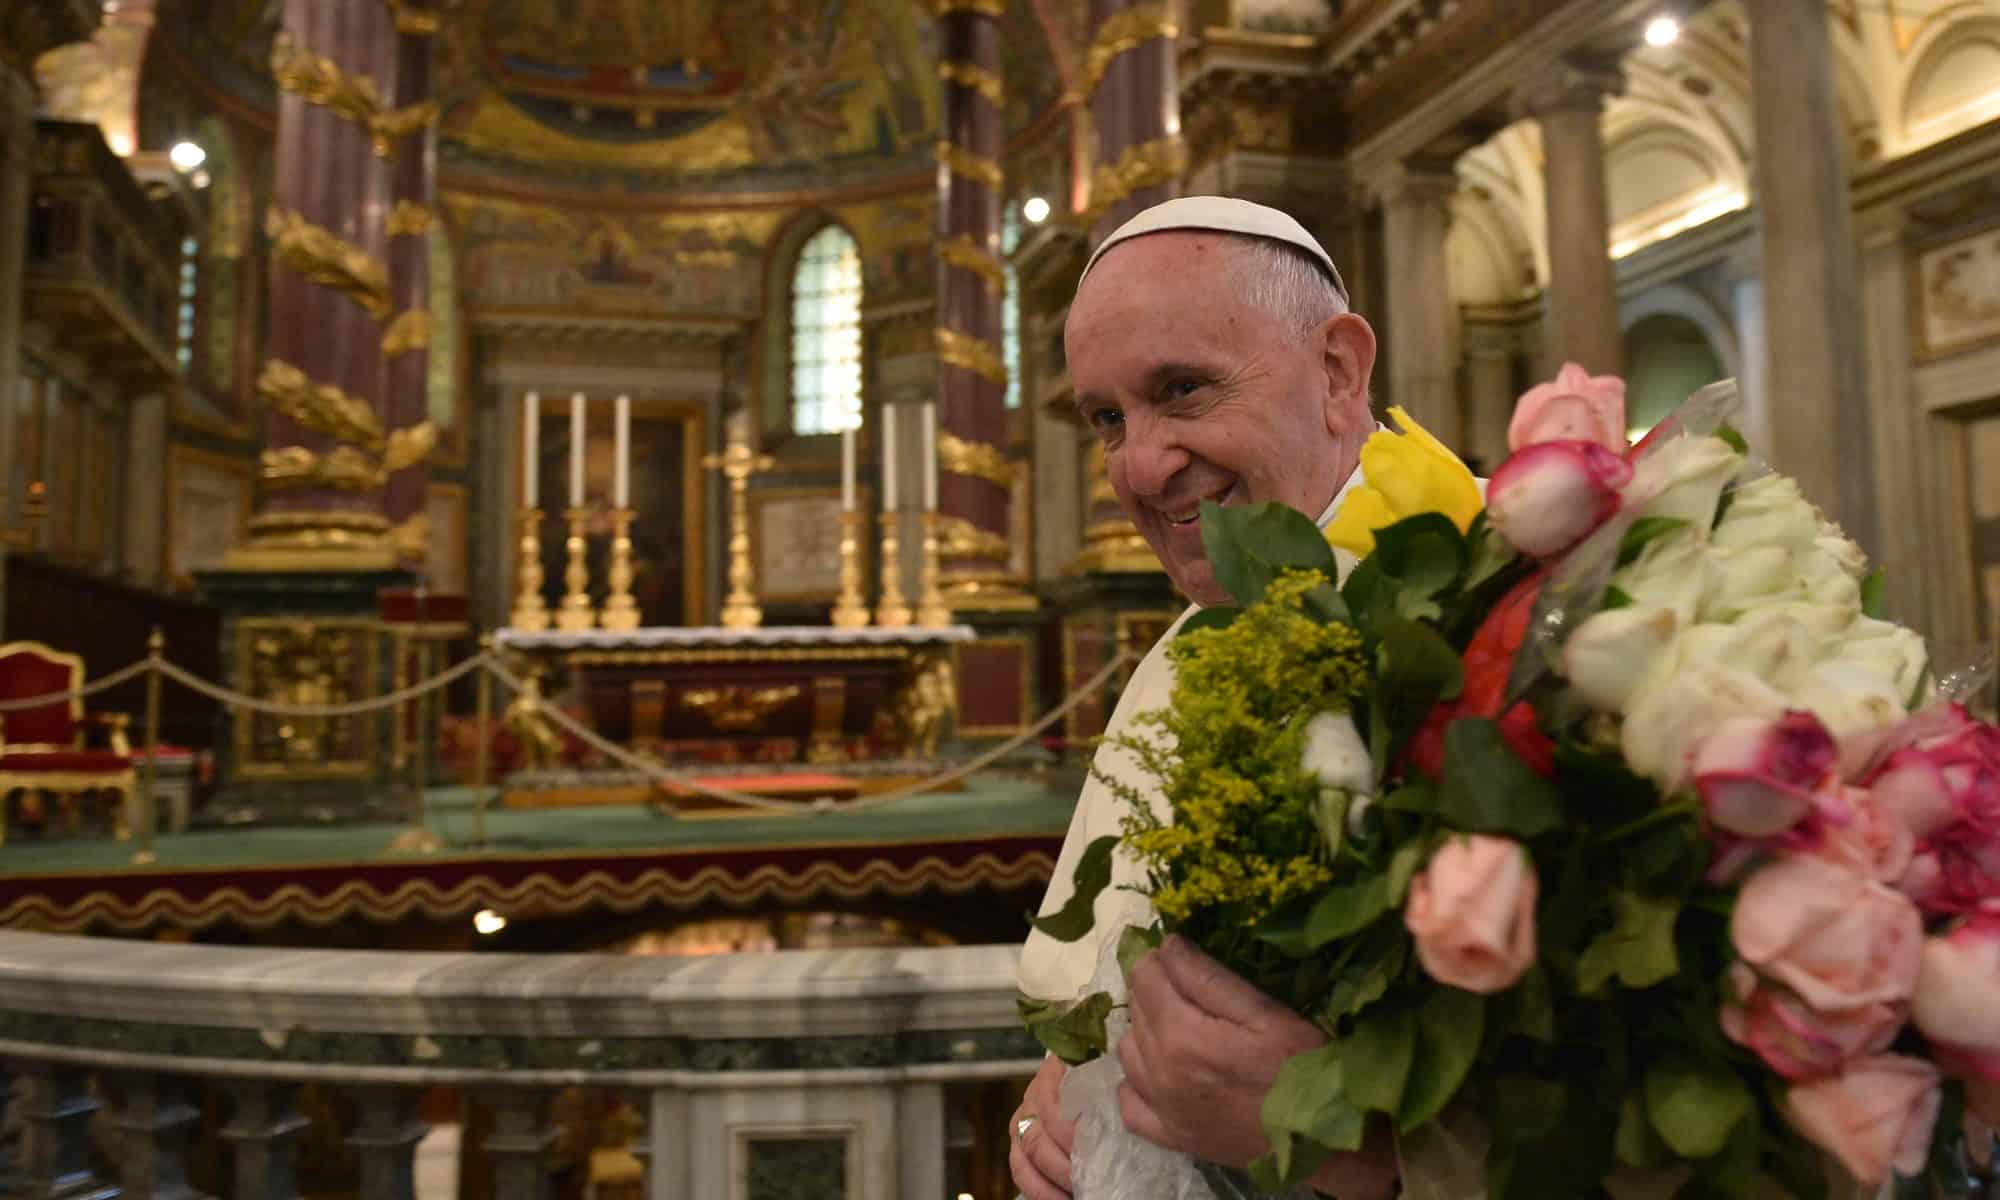 Pope Francis in Rome after Mexico trip